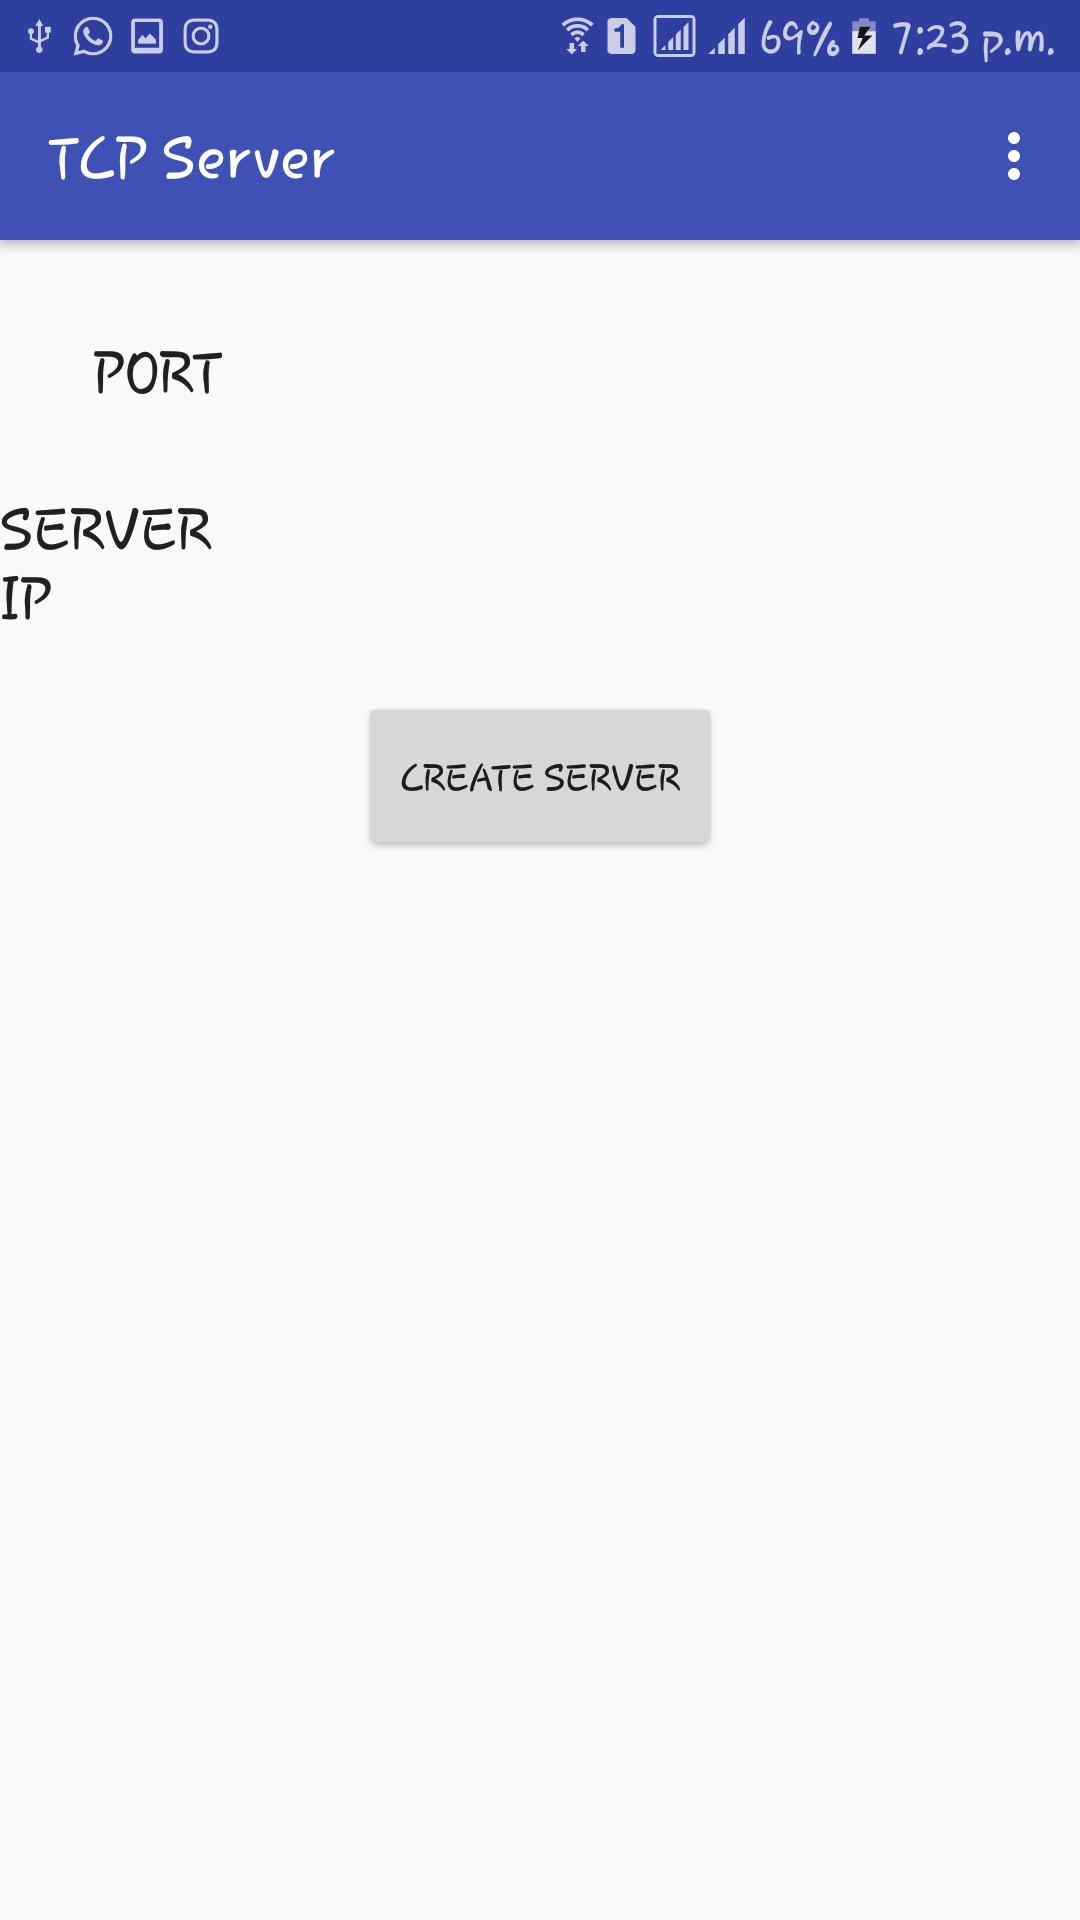 TCP SERVER for Android - APK Download